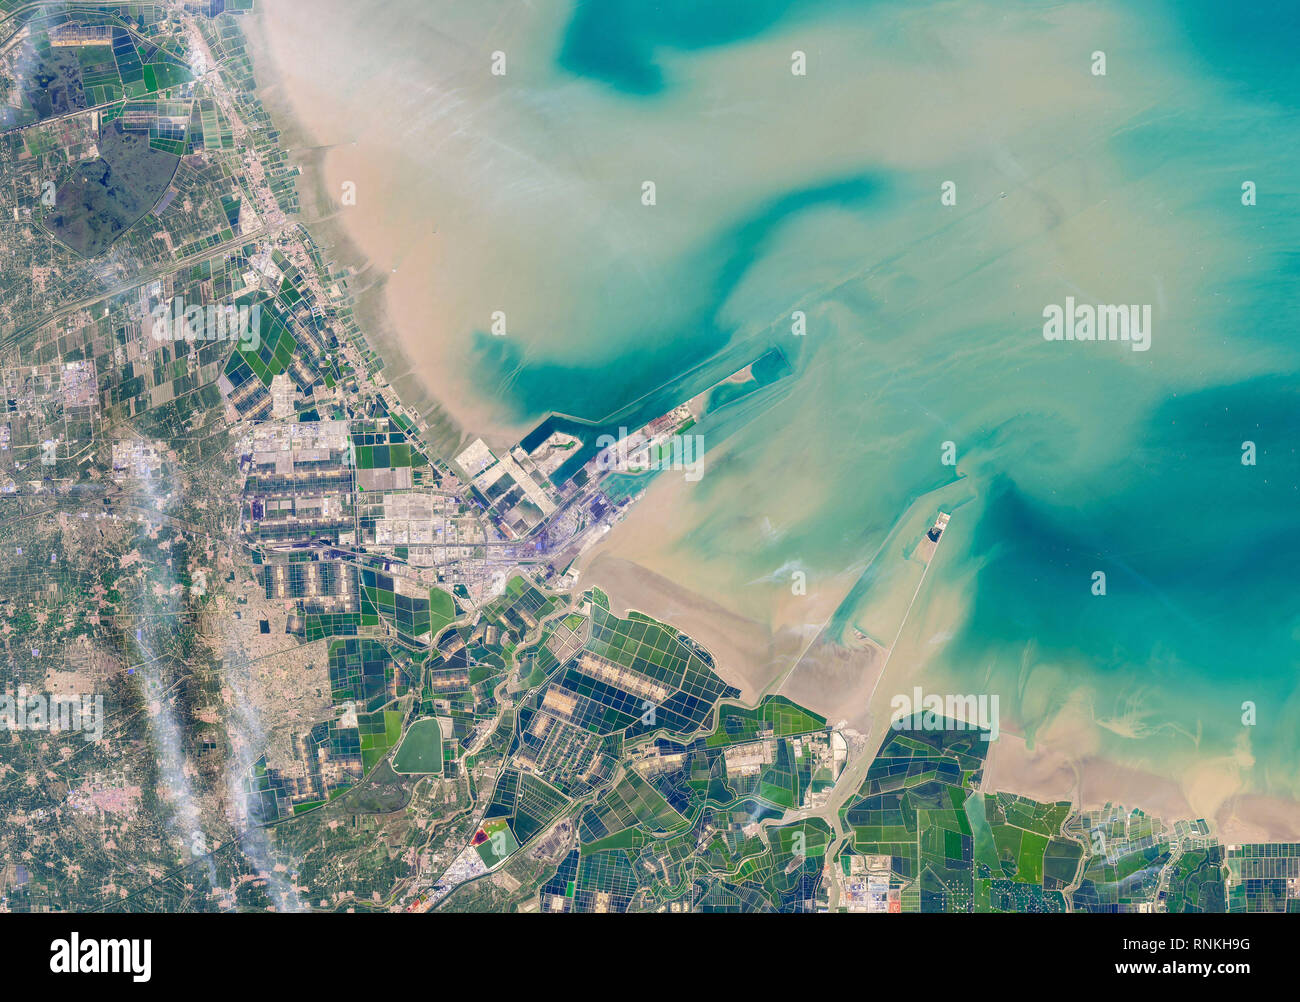 Satellite view of Shandong Peninsula in eastern China - an open expanse of tidal mudflats frequented mainly by birds and other wildlife - Stock Image